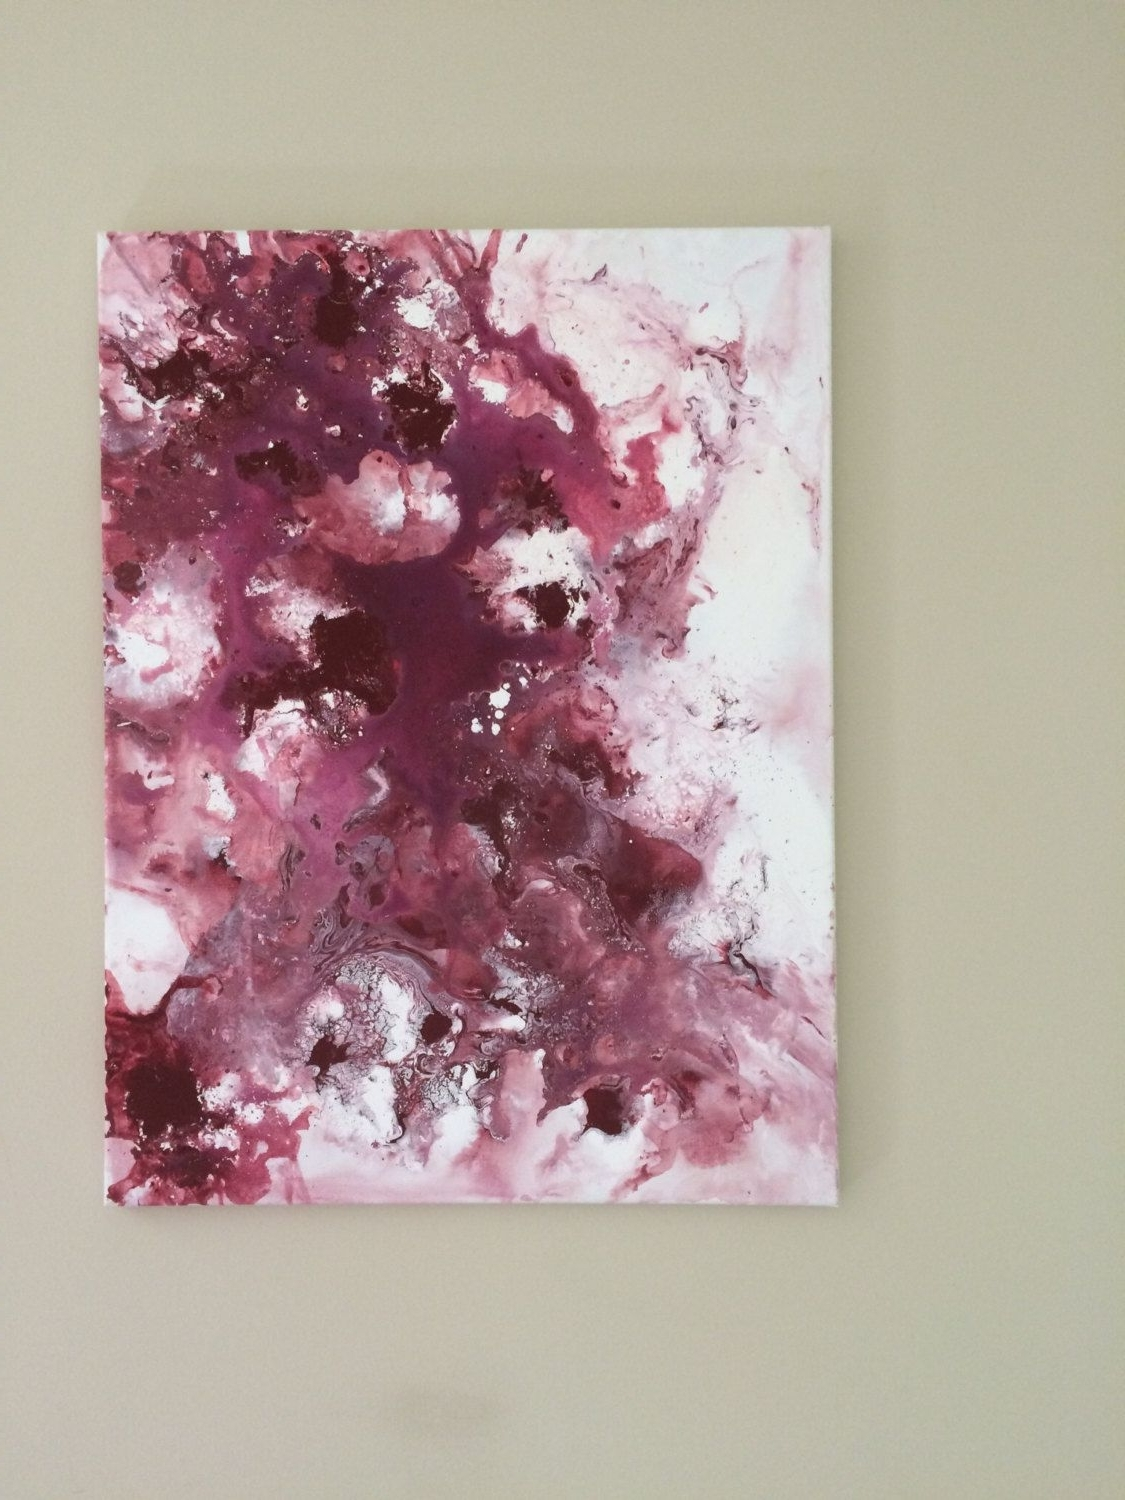 Widely Used Abstract Flow Art Burgundy Painting Large Fluid Painting Original Inside Burgundy Wall Art (View 2 of 15)